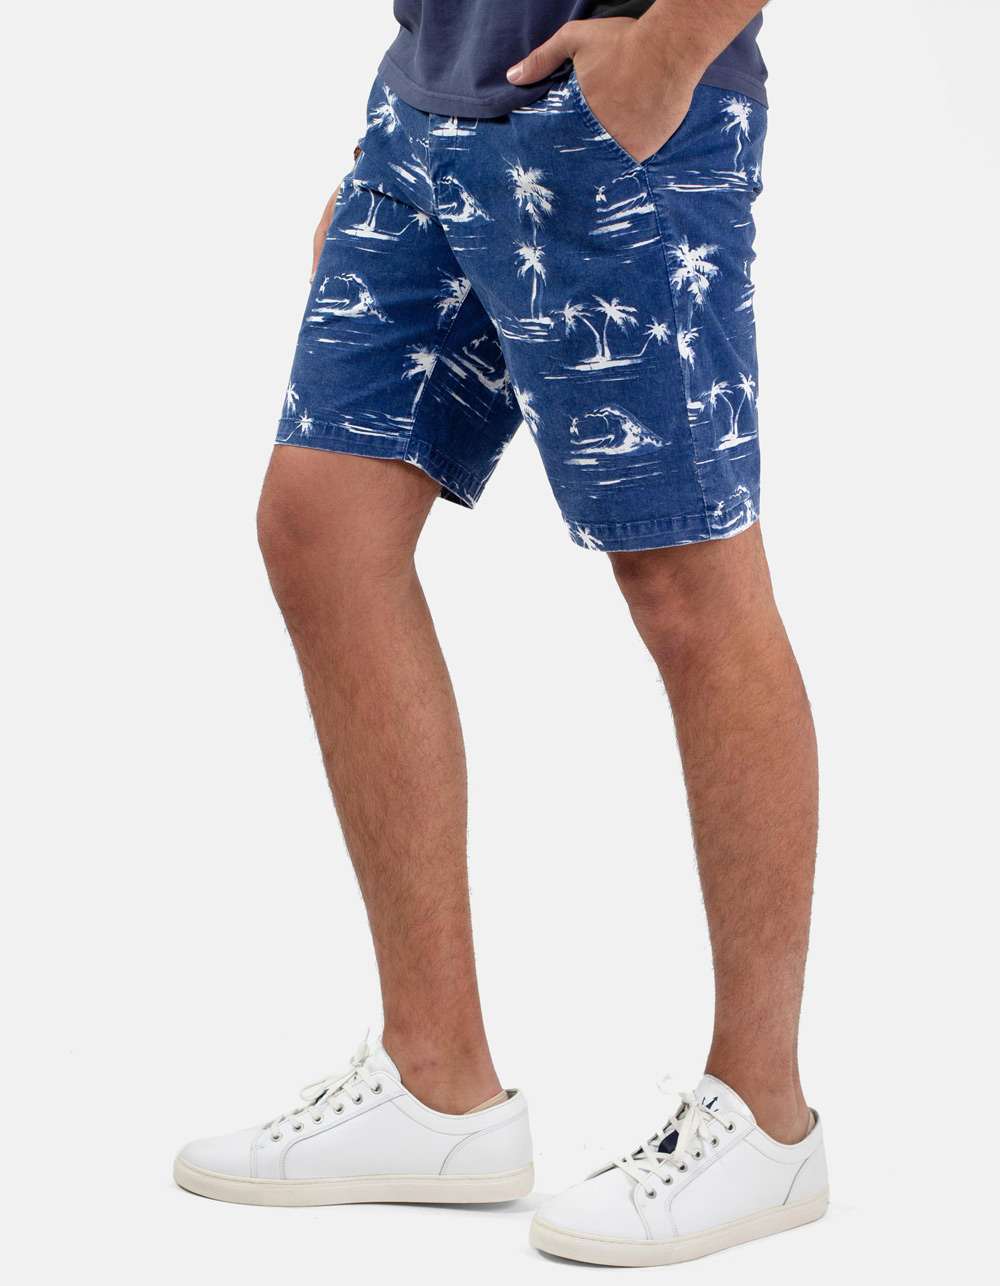 Navy Palm trees print bermudas